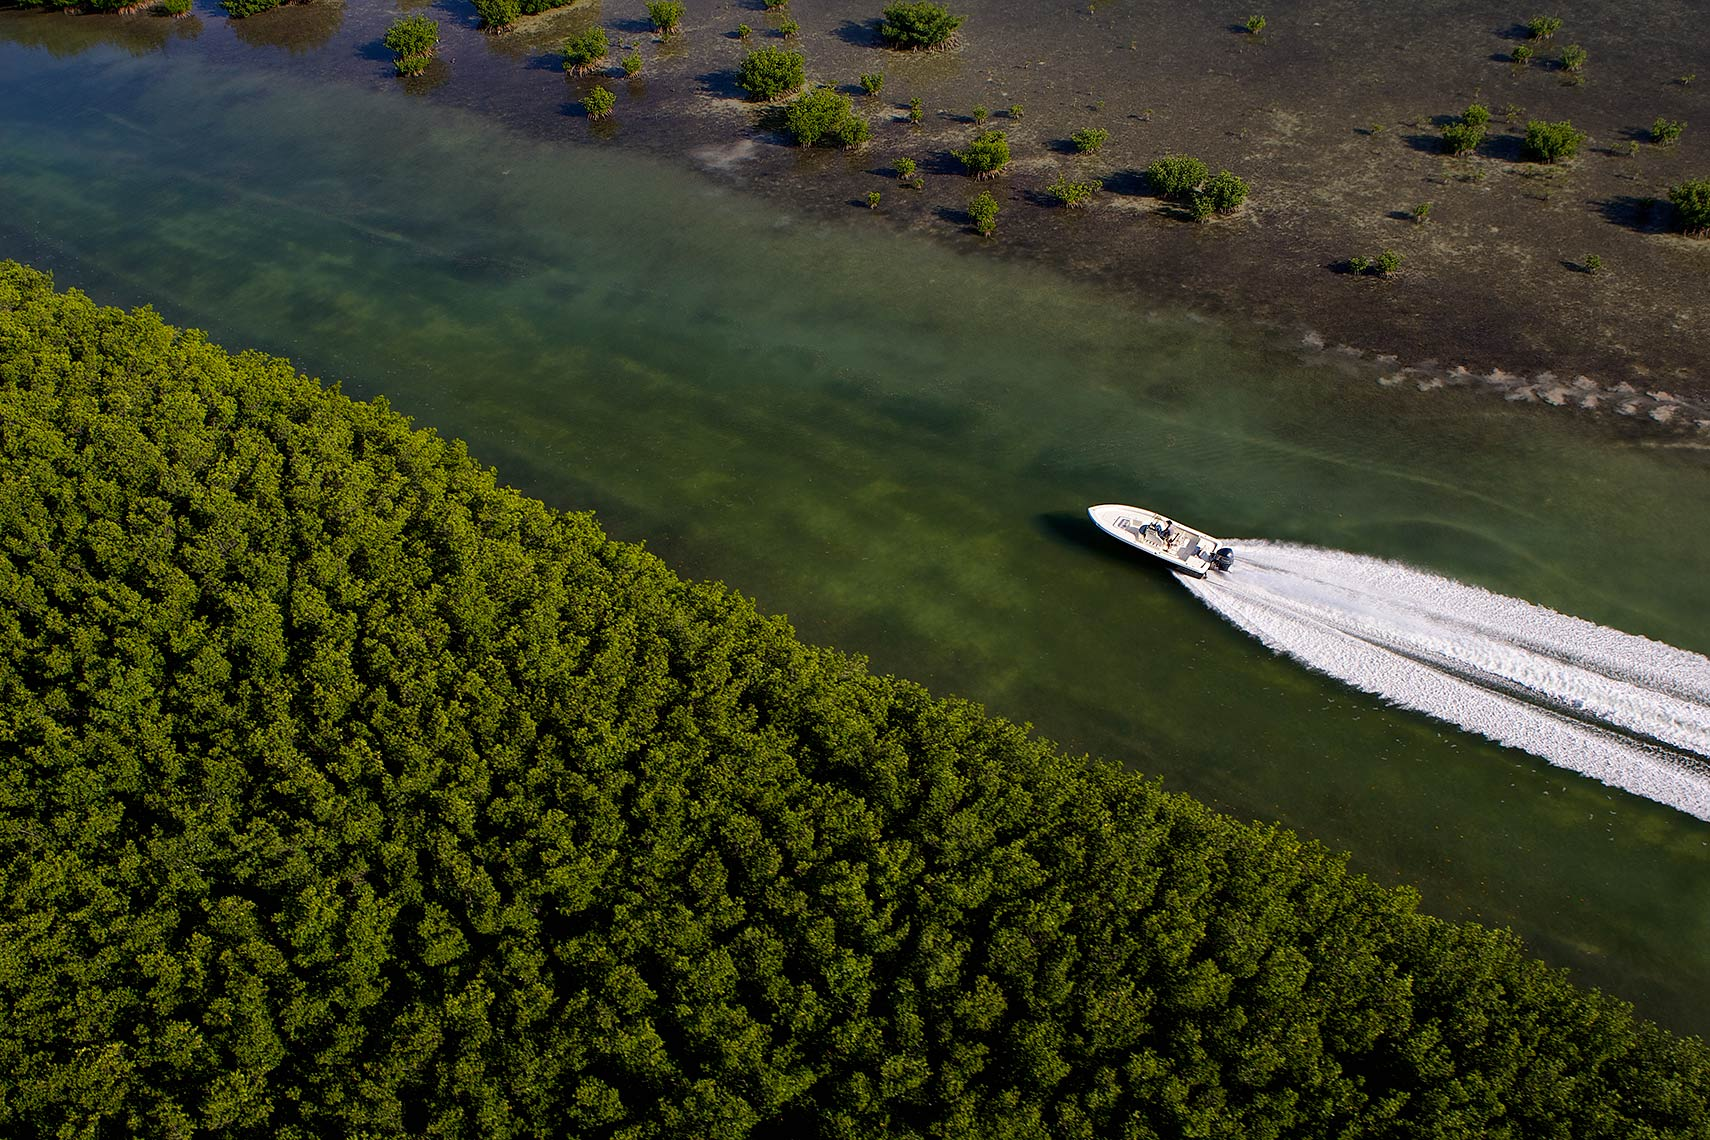 Robert_Holland_aerial-of-small-boat-in-mangrove-channel-in-Florida-Keys_A2D008